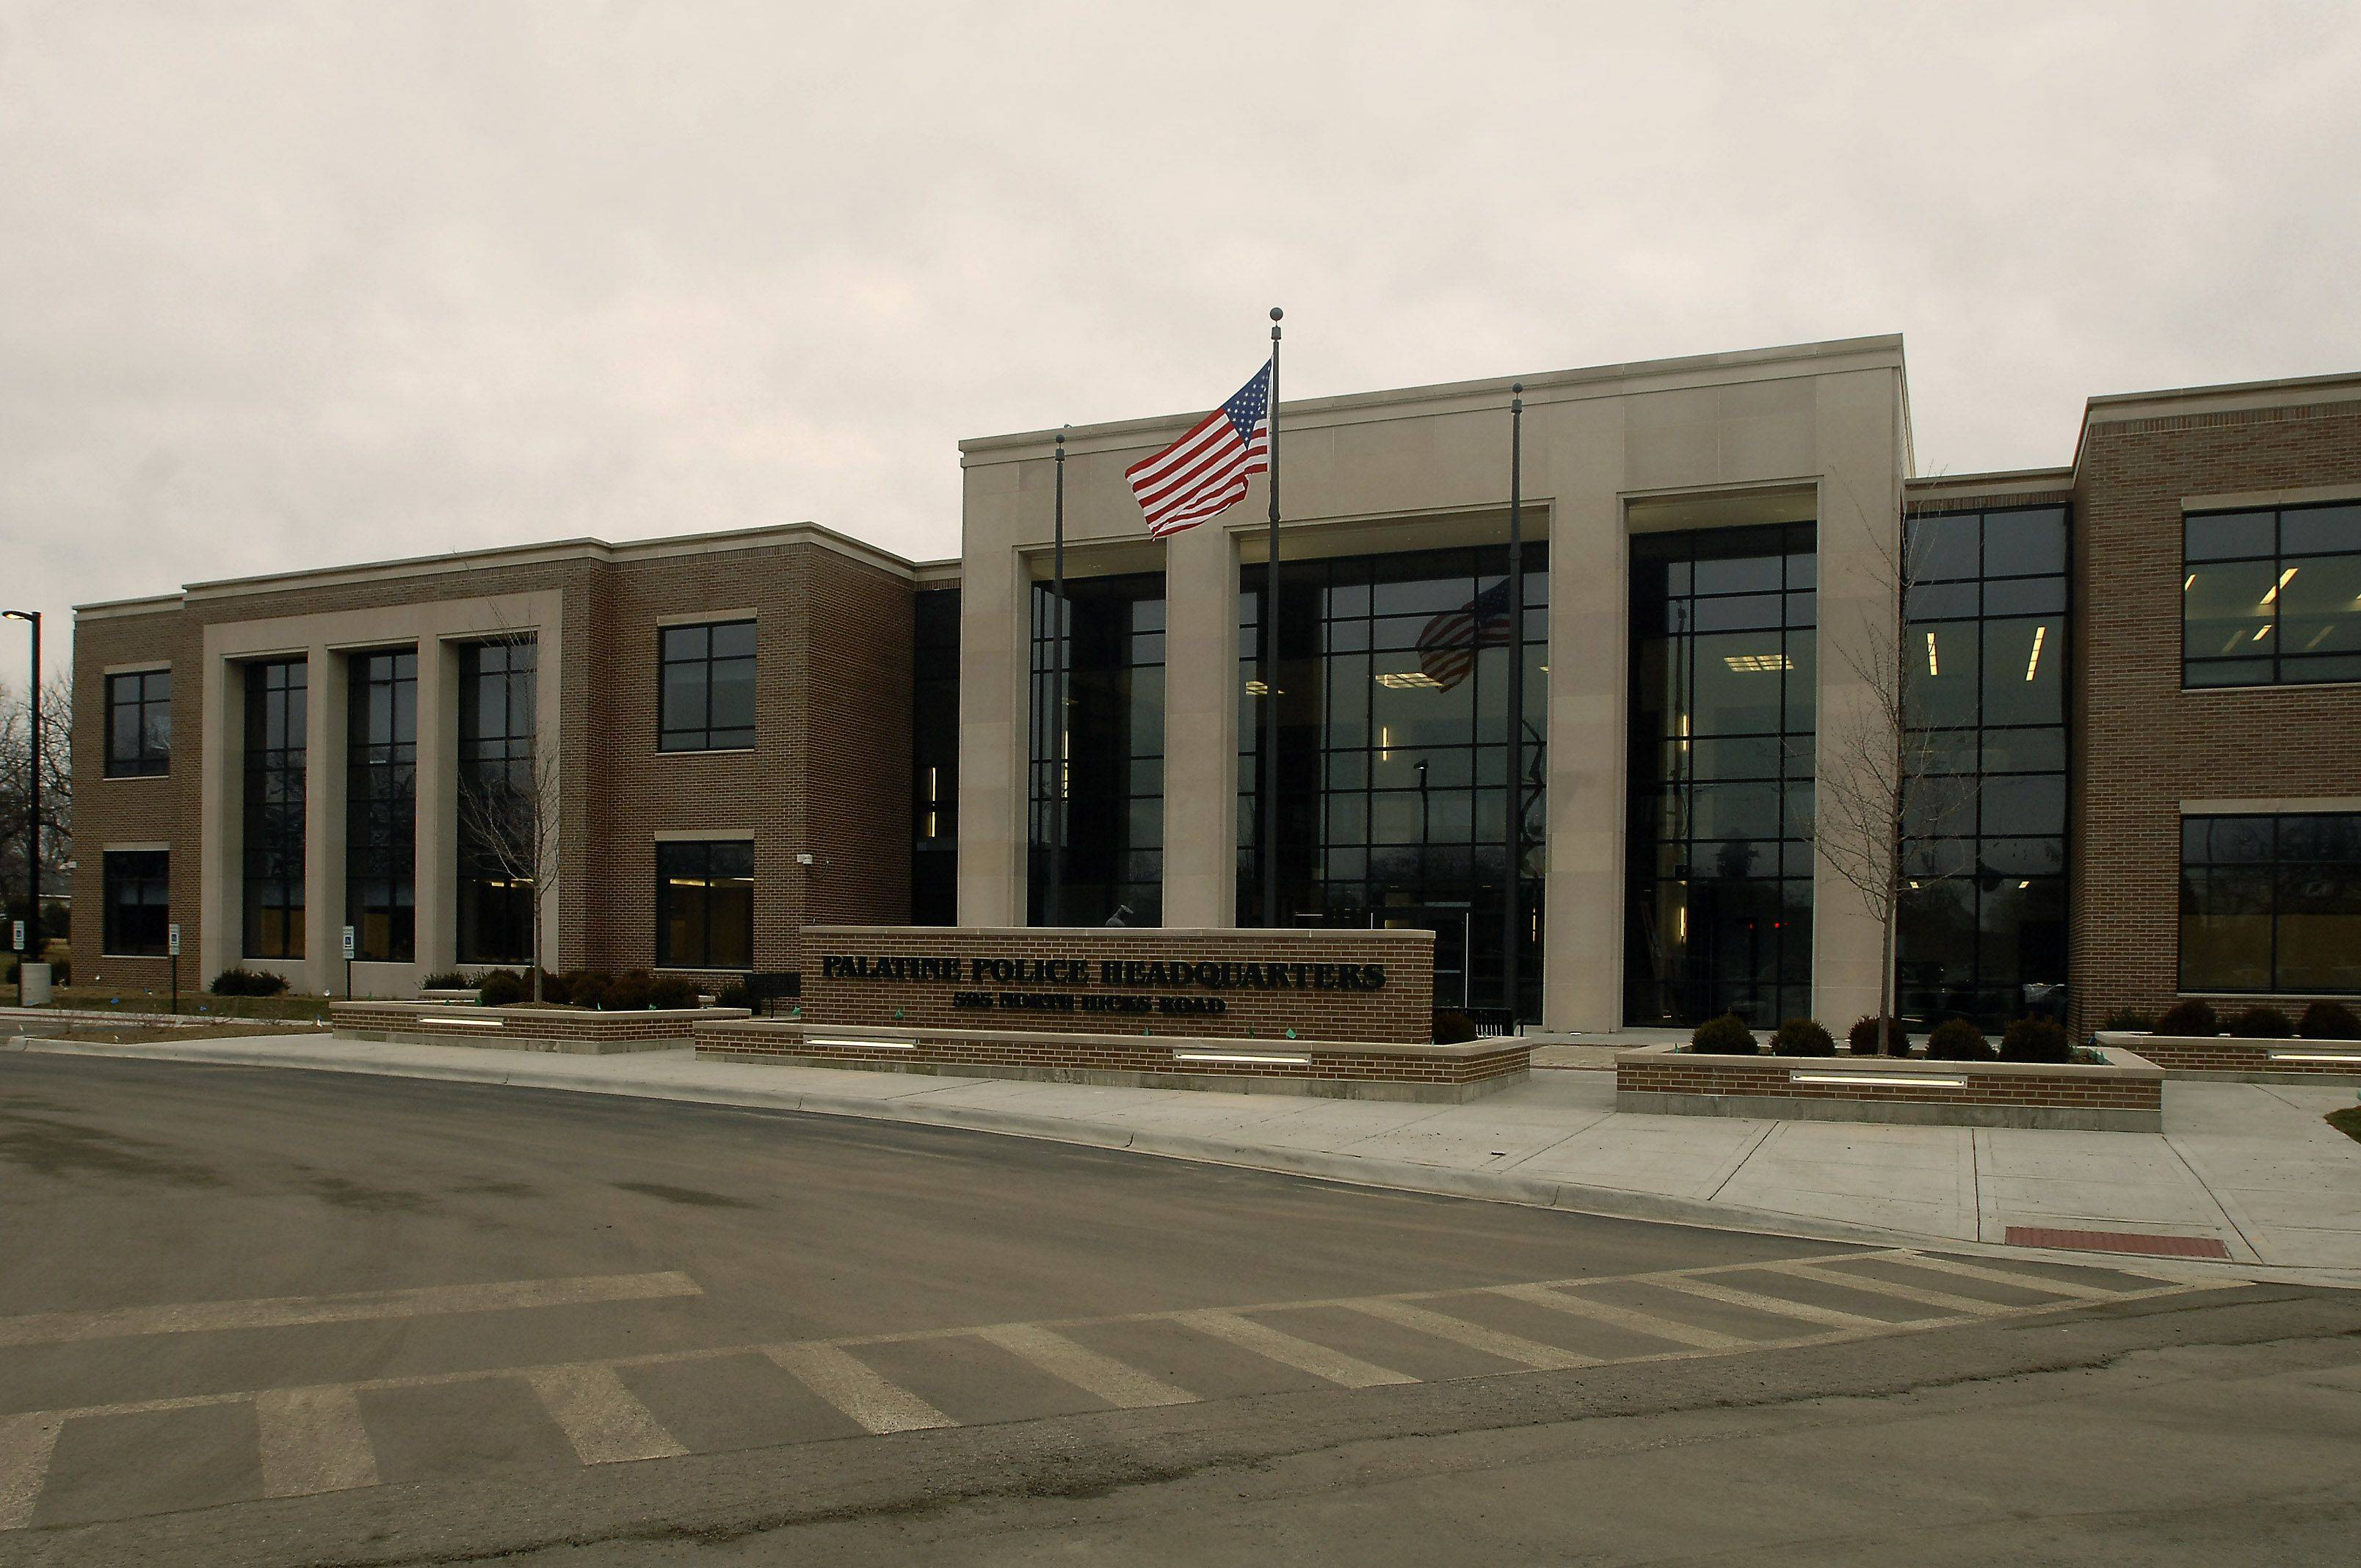 The new year will ring in a new home for Palatine police, who expect to move to this new building later this month.